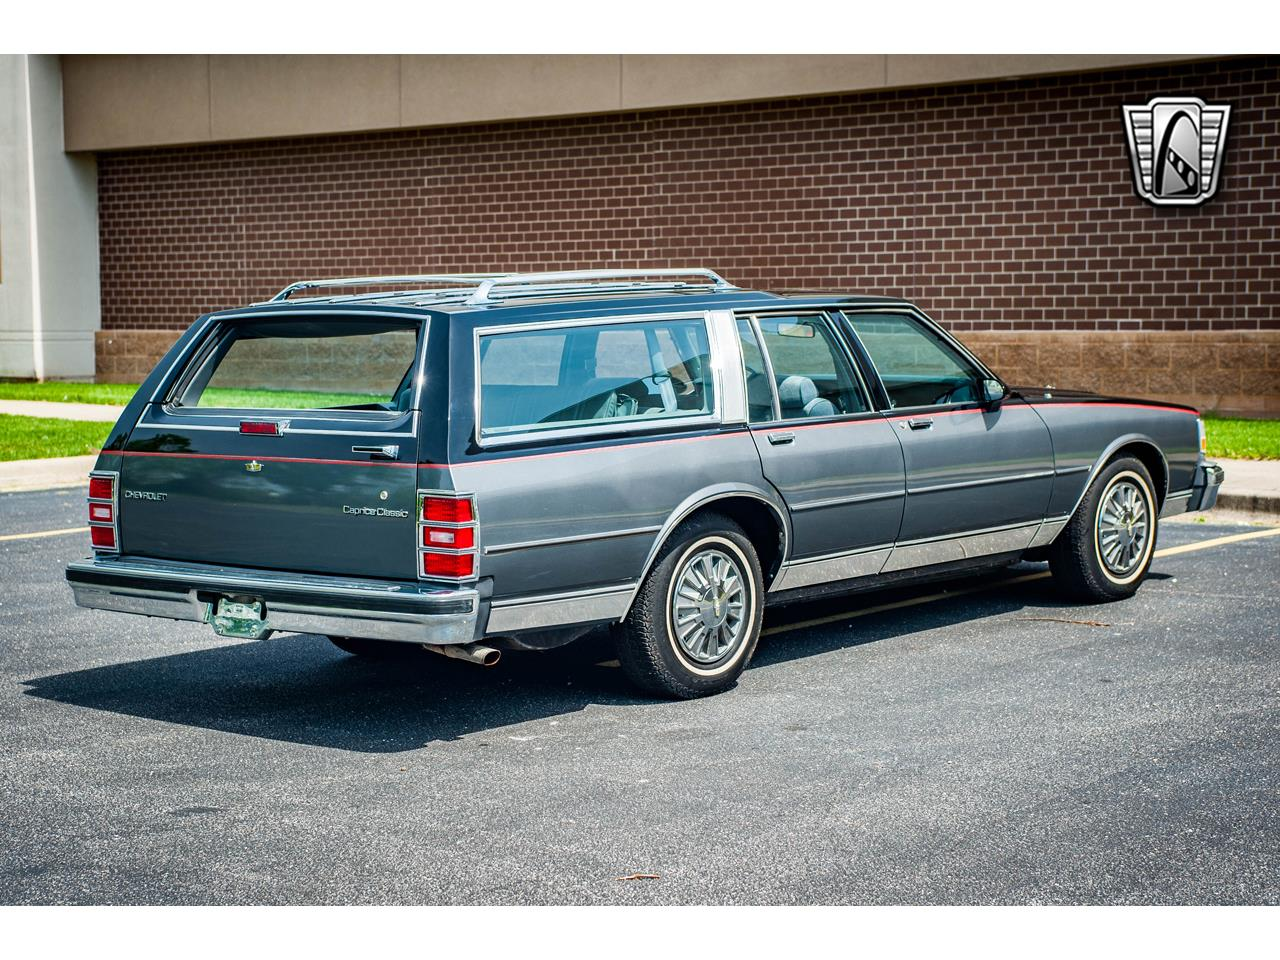 Large Picture of '89 Chevrolet Caprice - $17,995.00 Offered by Gateway Classic Cars - St. Louis - QB9K